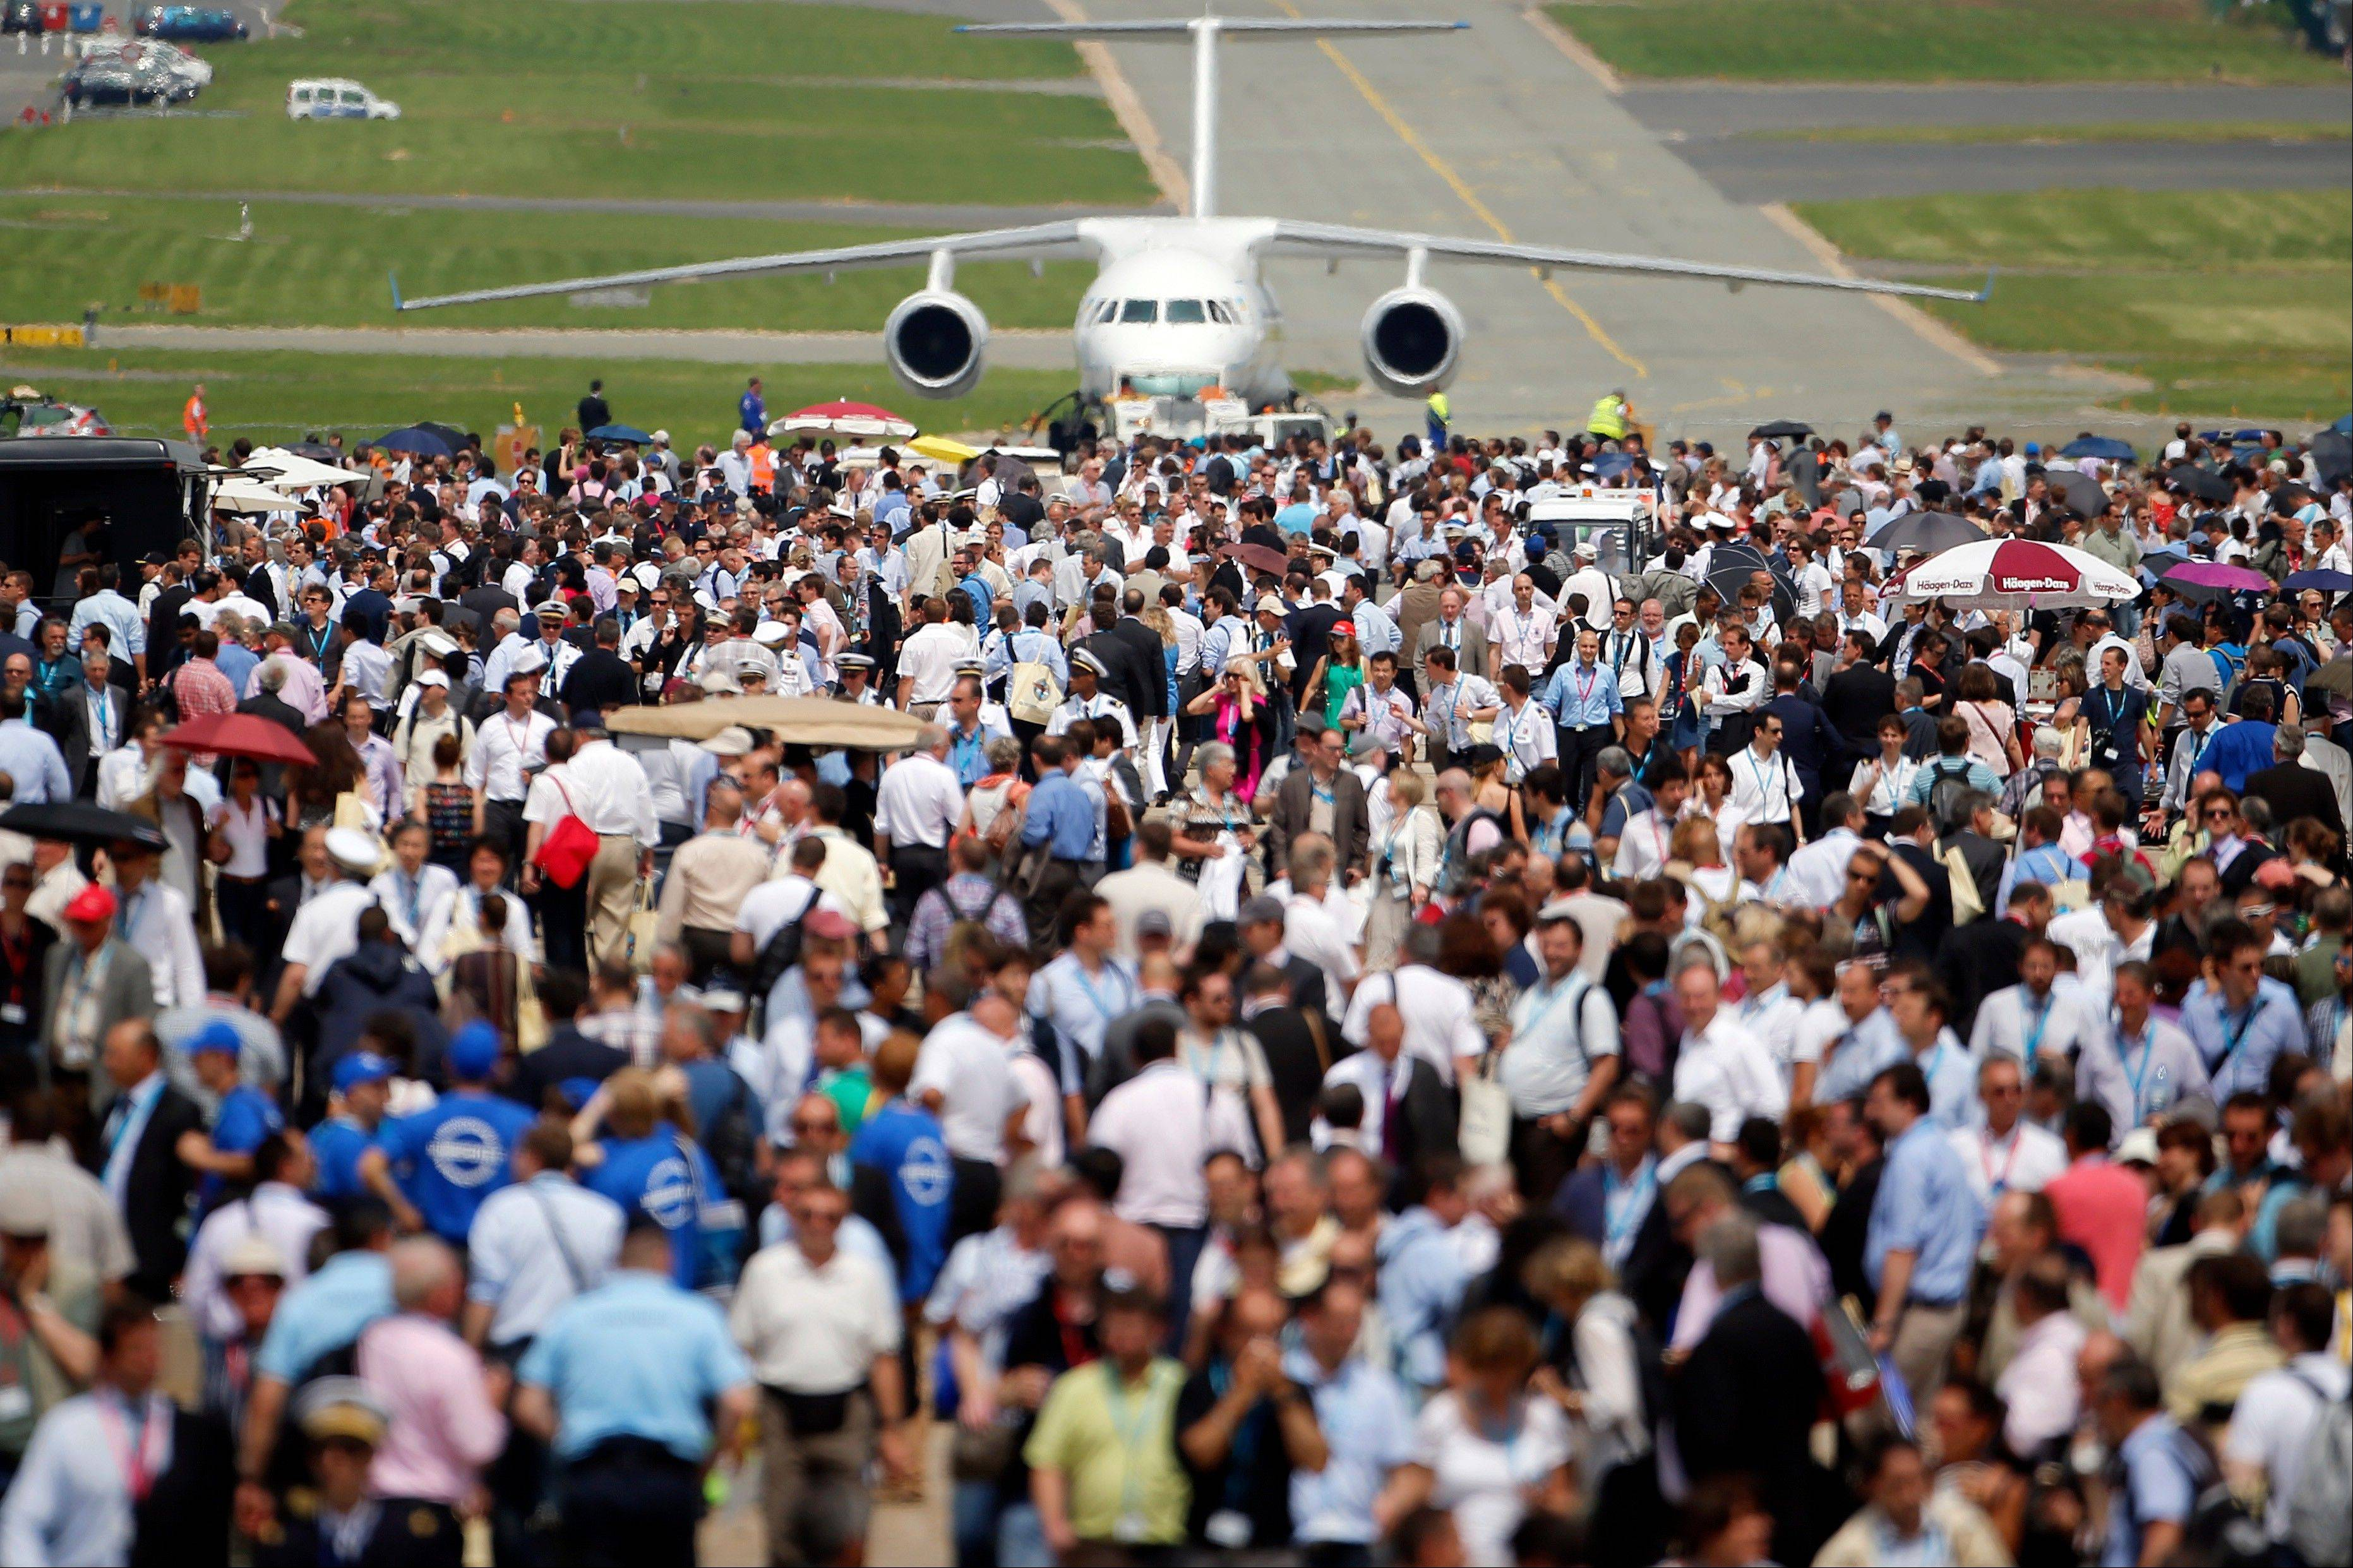 Visitors walk by a Russian Antonov 58, in the background, during the 50th Paris Air Show at Le Bourget airport, north of Paris, Wednesday, June 19, 2013. (AP Photo/Francois Mori)